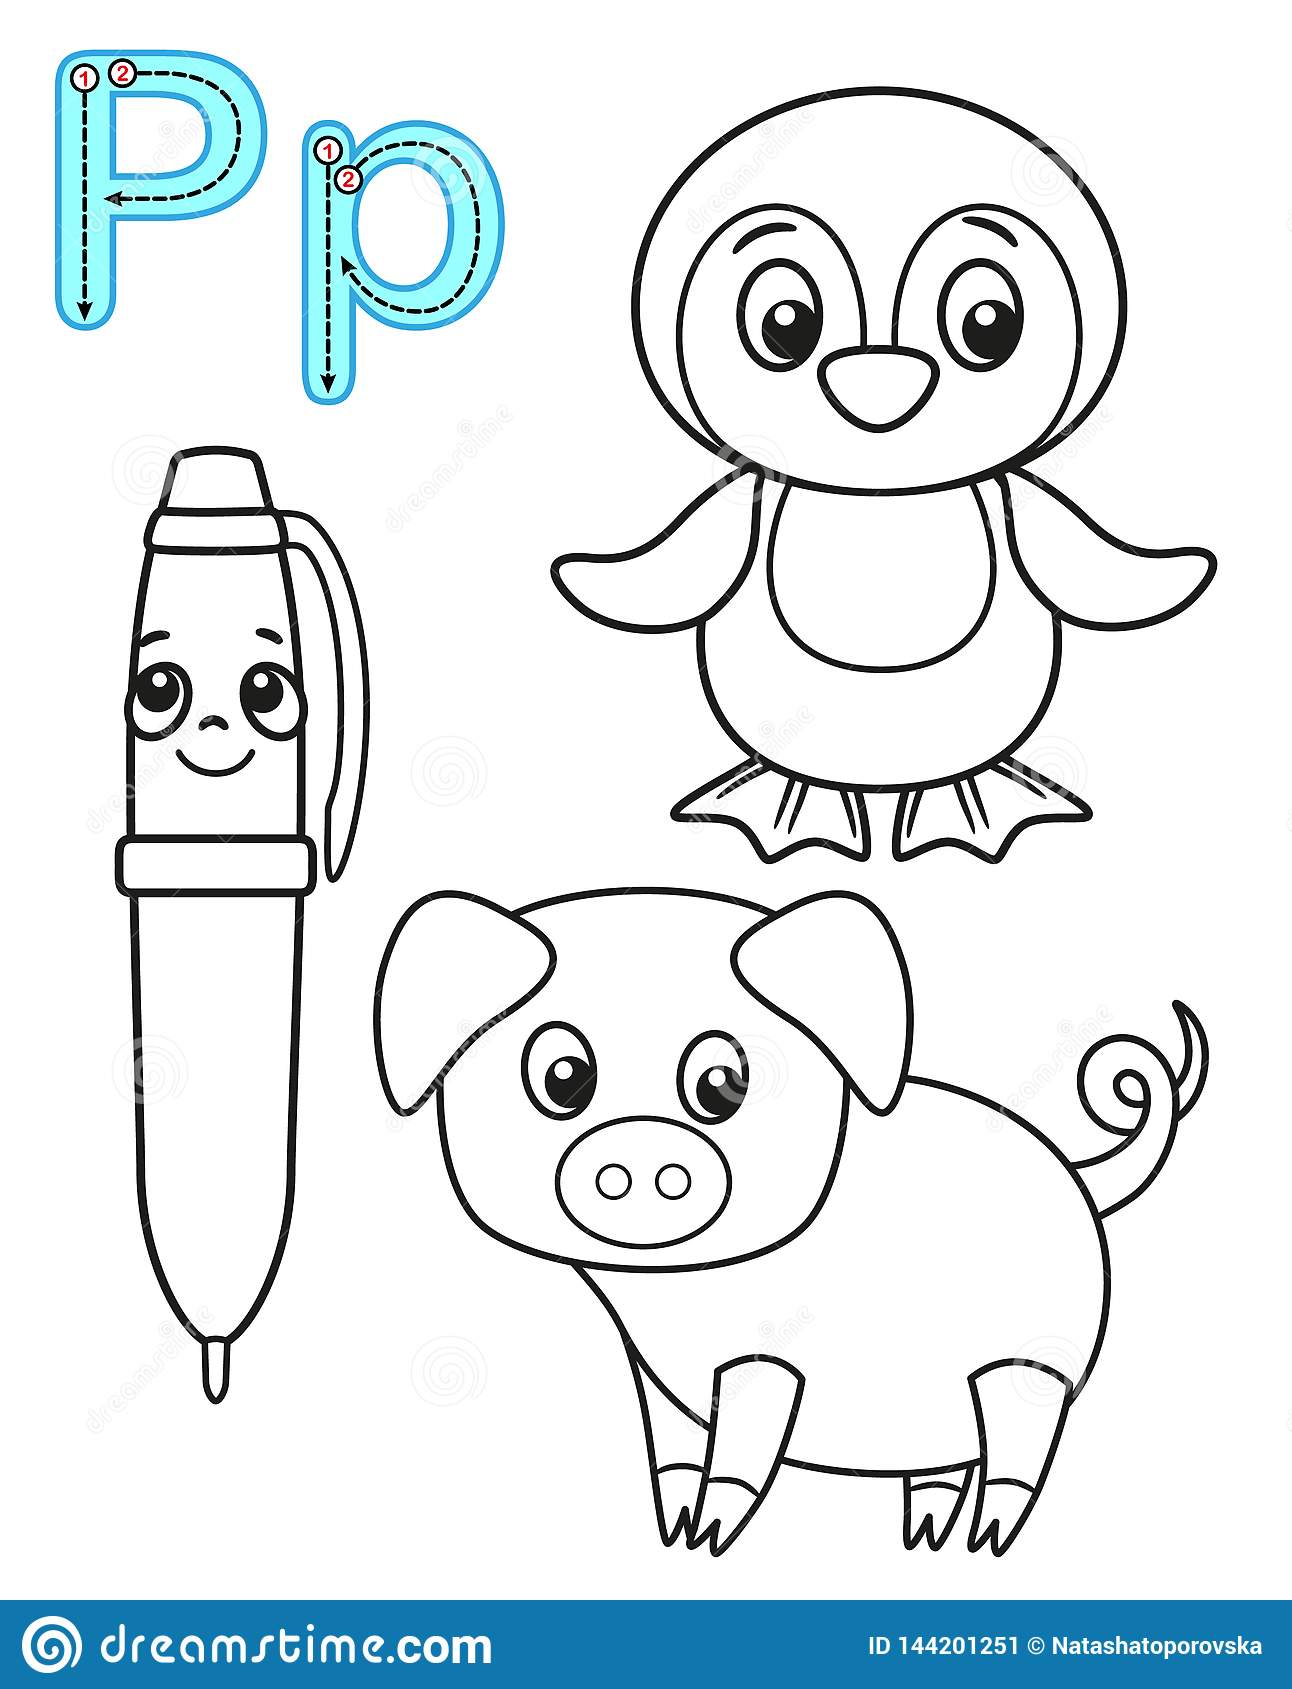 Printable Coloring Page For Kindergarten And Preschool Card For